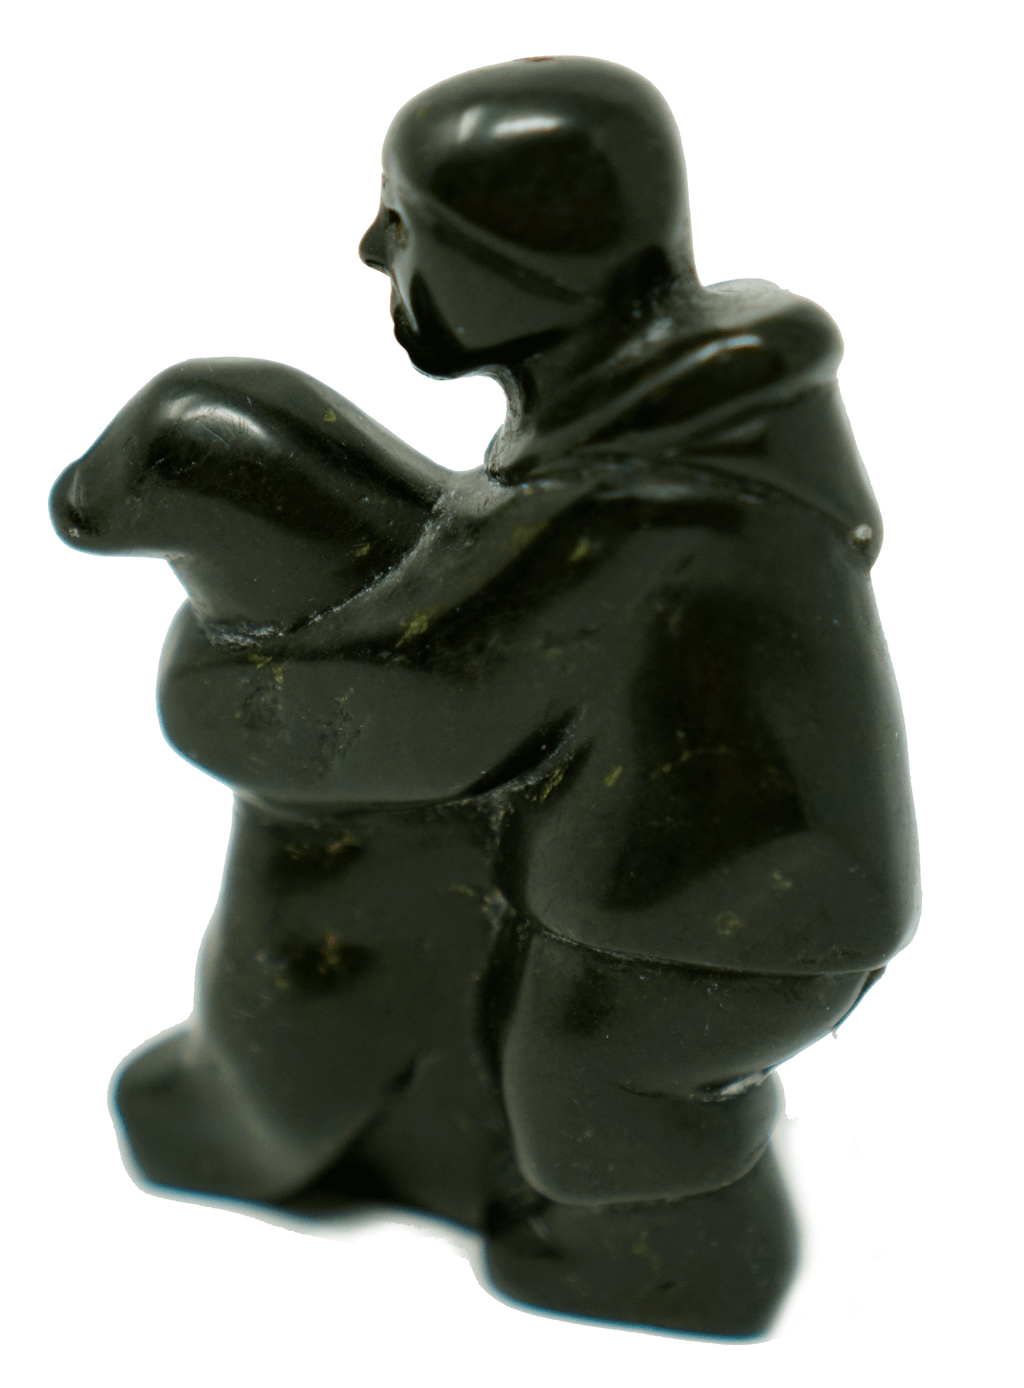 Inuit Eskimo Sculpture by Qaunaq Palluq